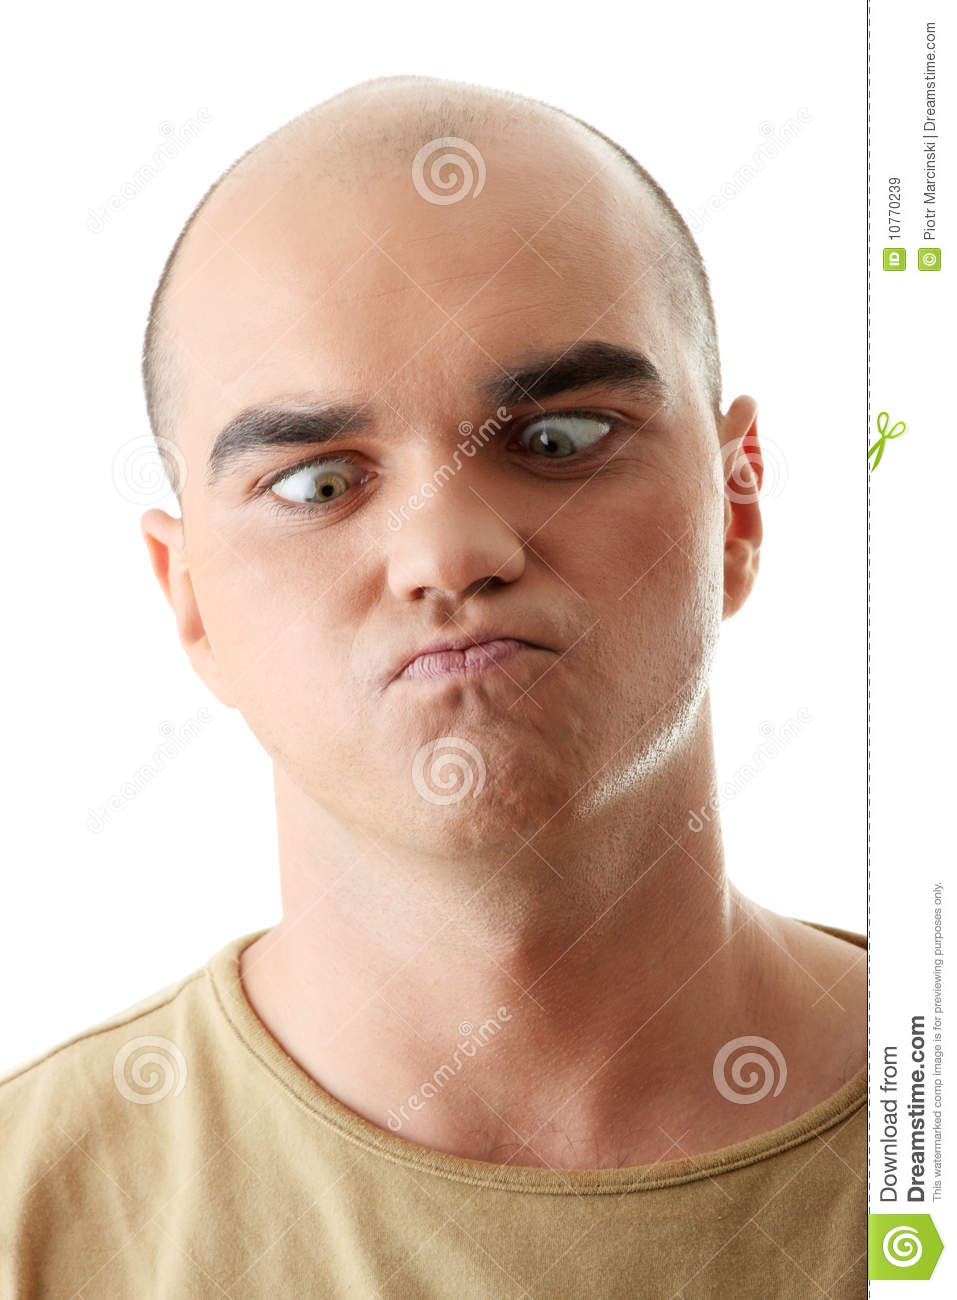 Man With Happy Facial Expression Stock Image - Image: 10770239